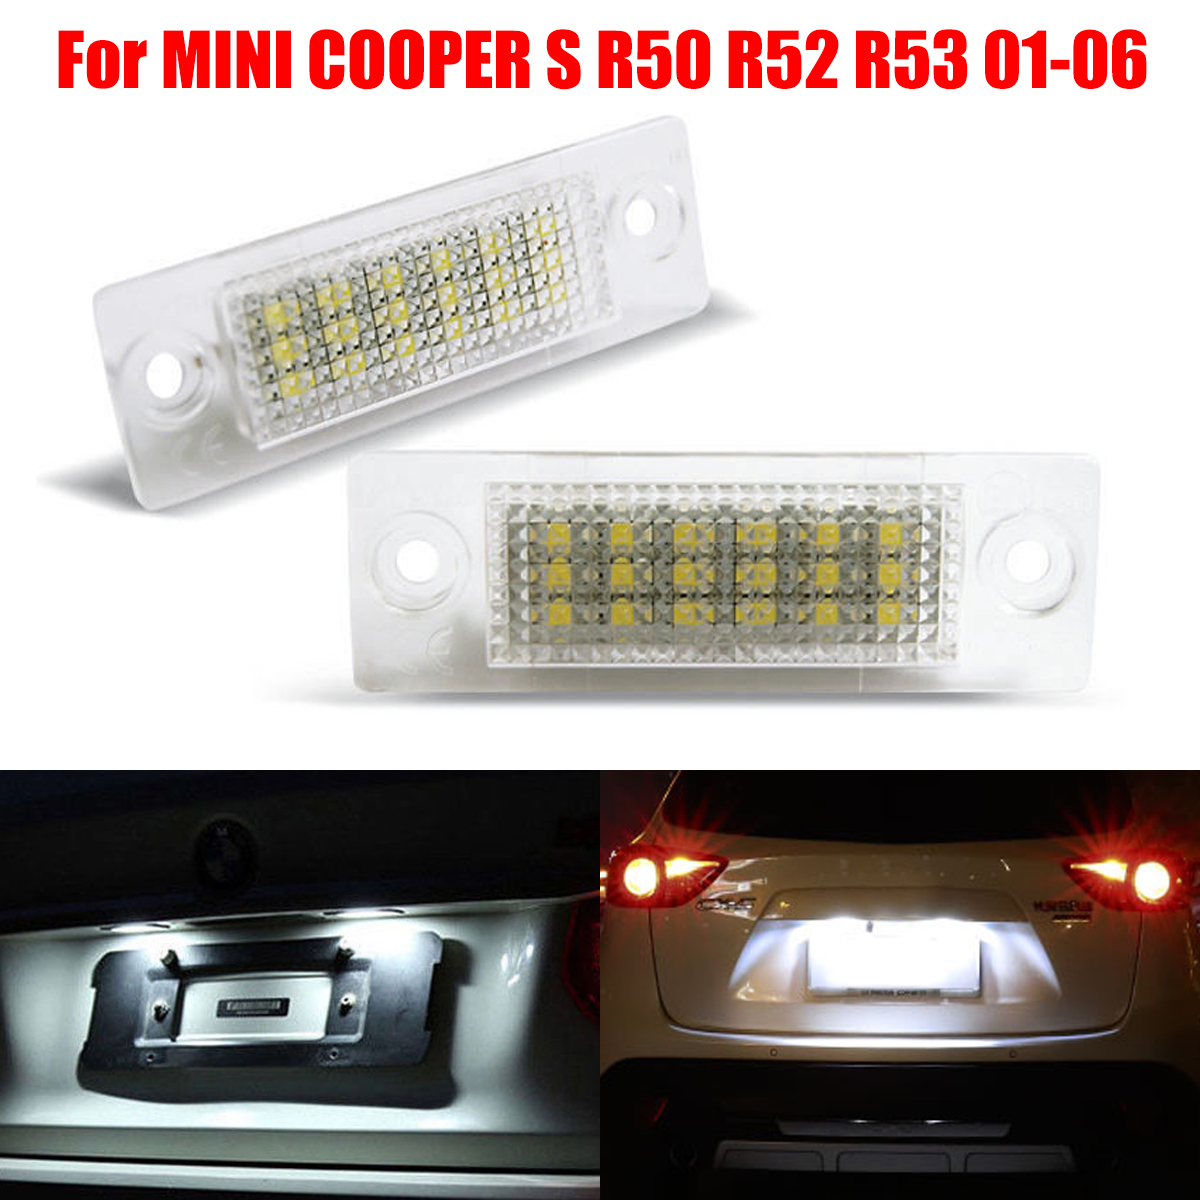 2Pcs License Number Plate Light Lamp 18-LED For VW/Caddy/Transporter/Passat/Golf/Touran/Jetta For Skoda No Error high quality plastic and led bulbs 2pcs white error free 18 led license plate light lamp kit for vw golf eos passat polo phaeton